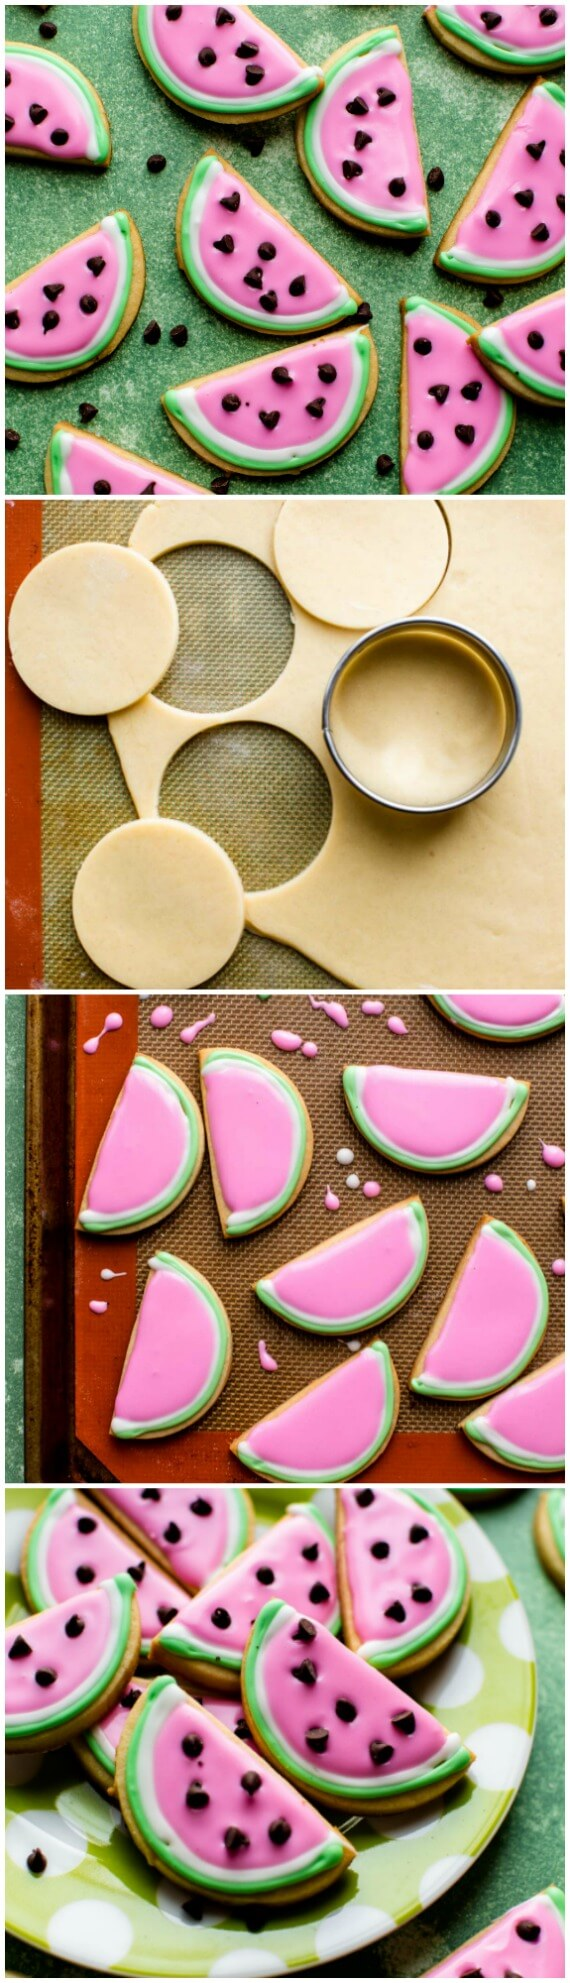 How to make summertime watermelon sugar cookies with this SOFT sugar cookie and easy royal icing recipe! sallysbakingaddiction.com